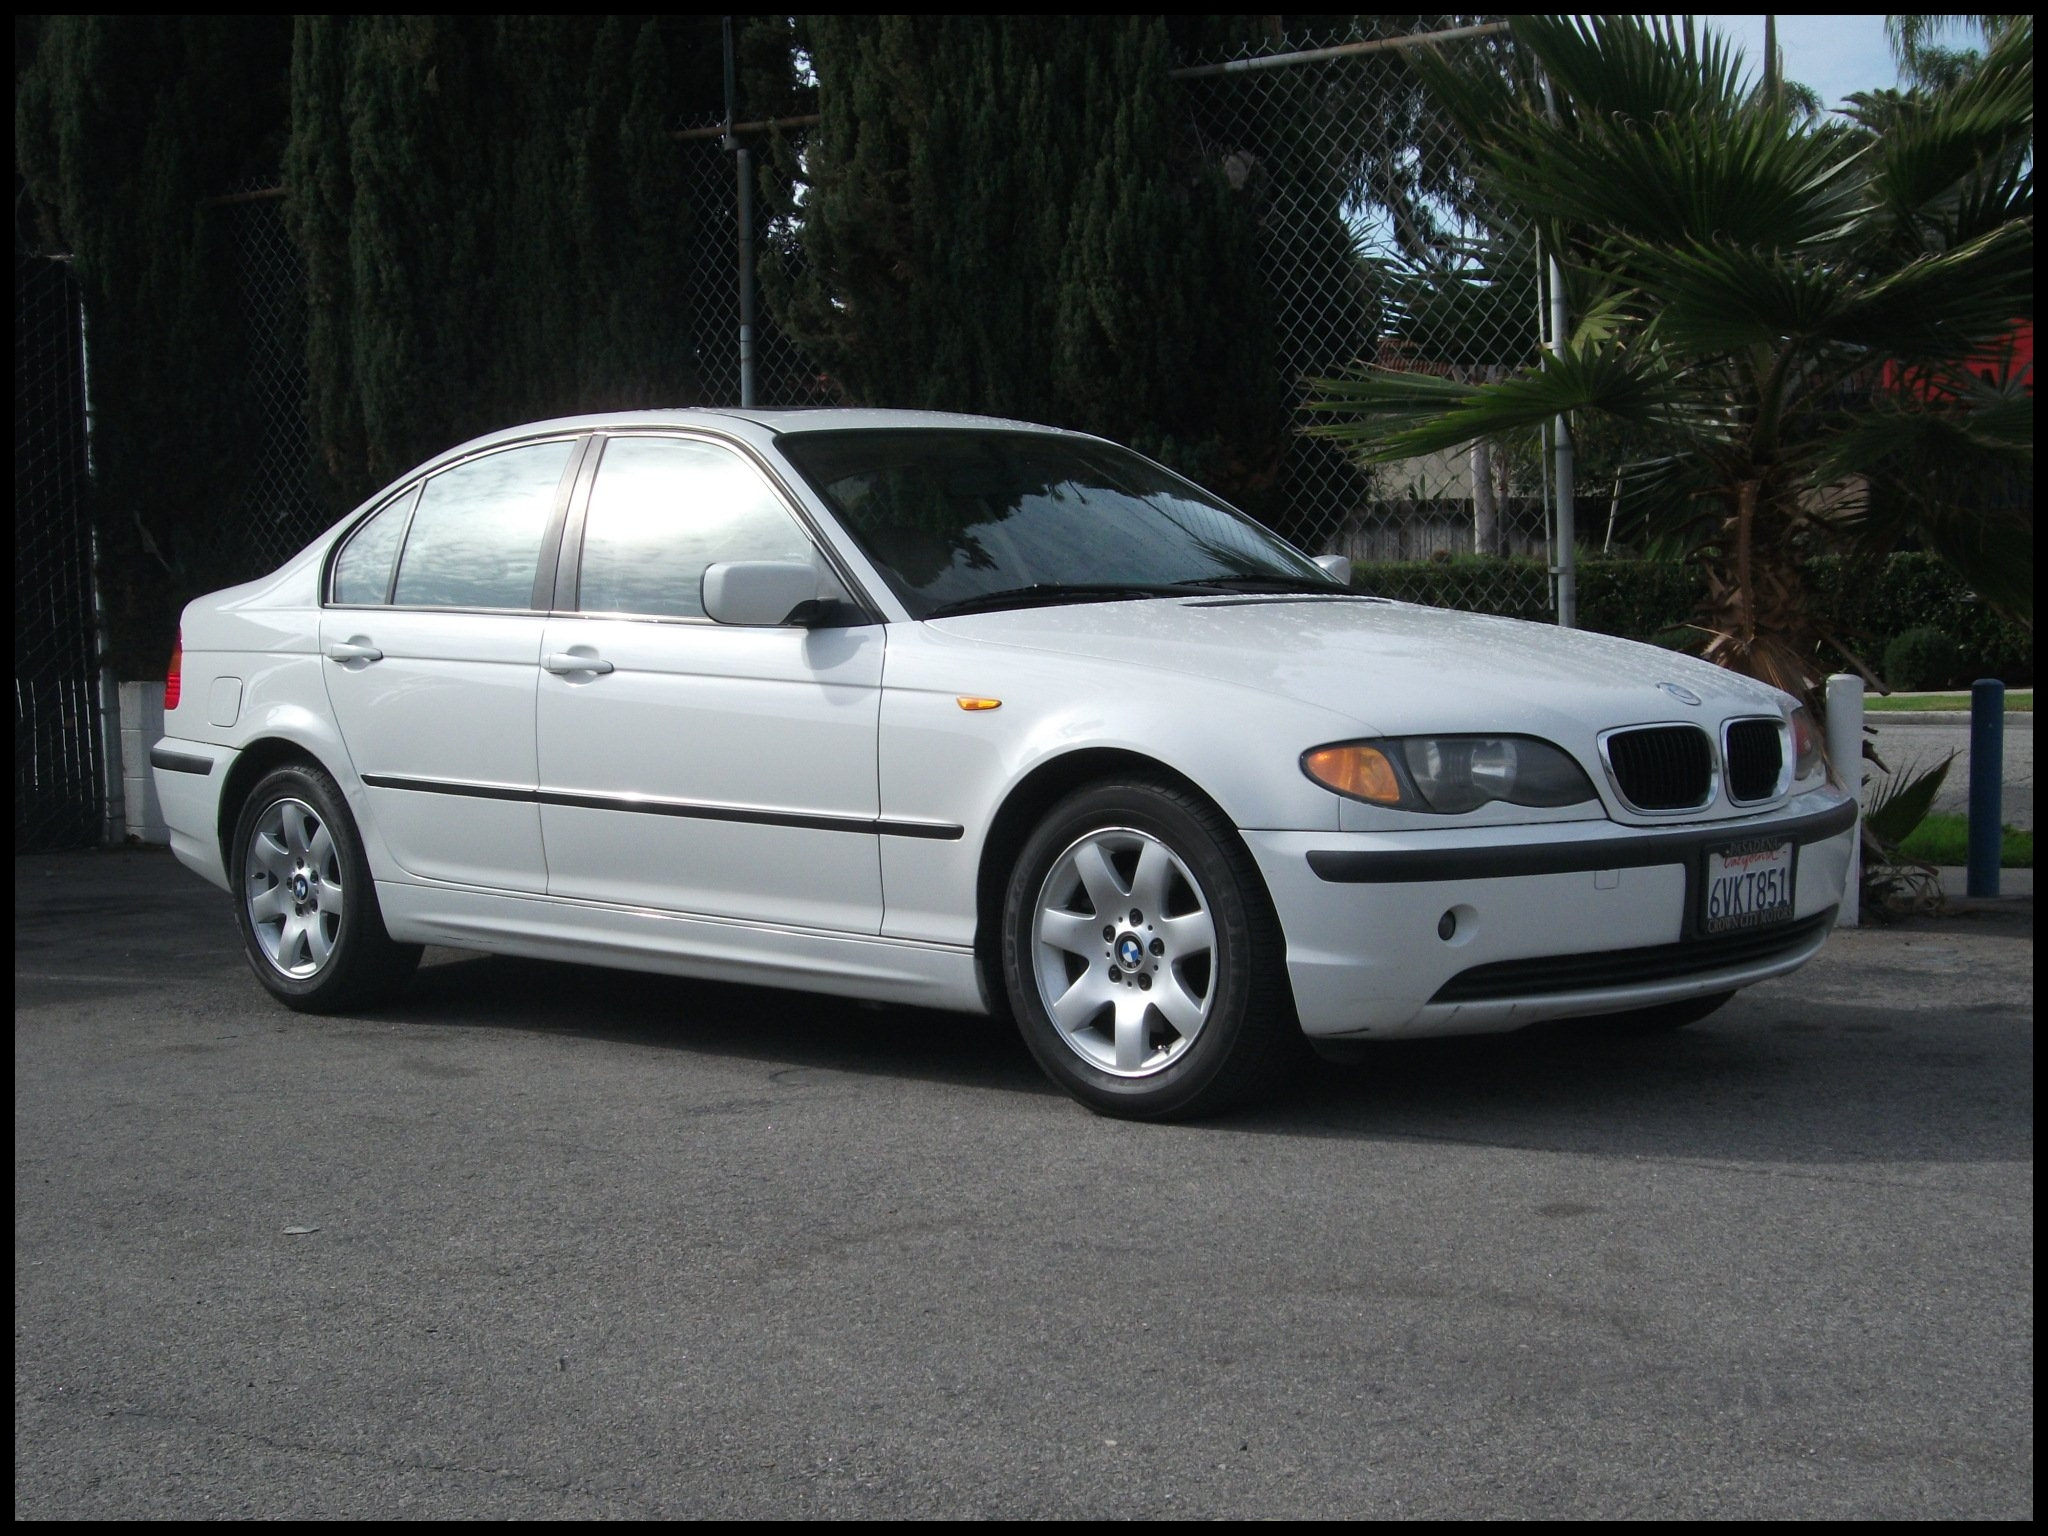 2002 Bmw 325xi Review Unique 2003 Bmw 325i Specs New 2002 Bmw 325i Specs – Car